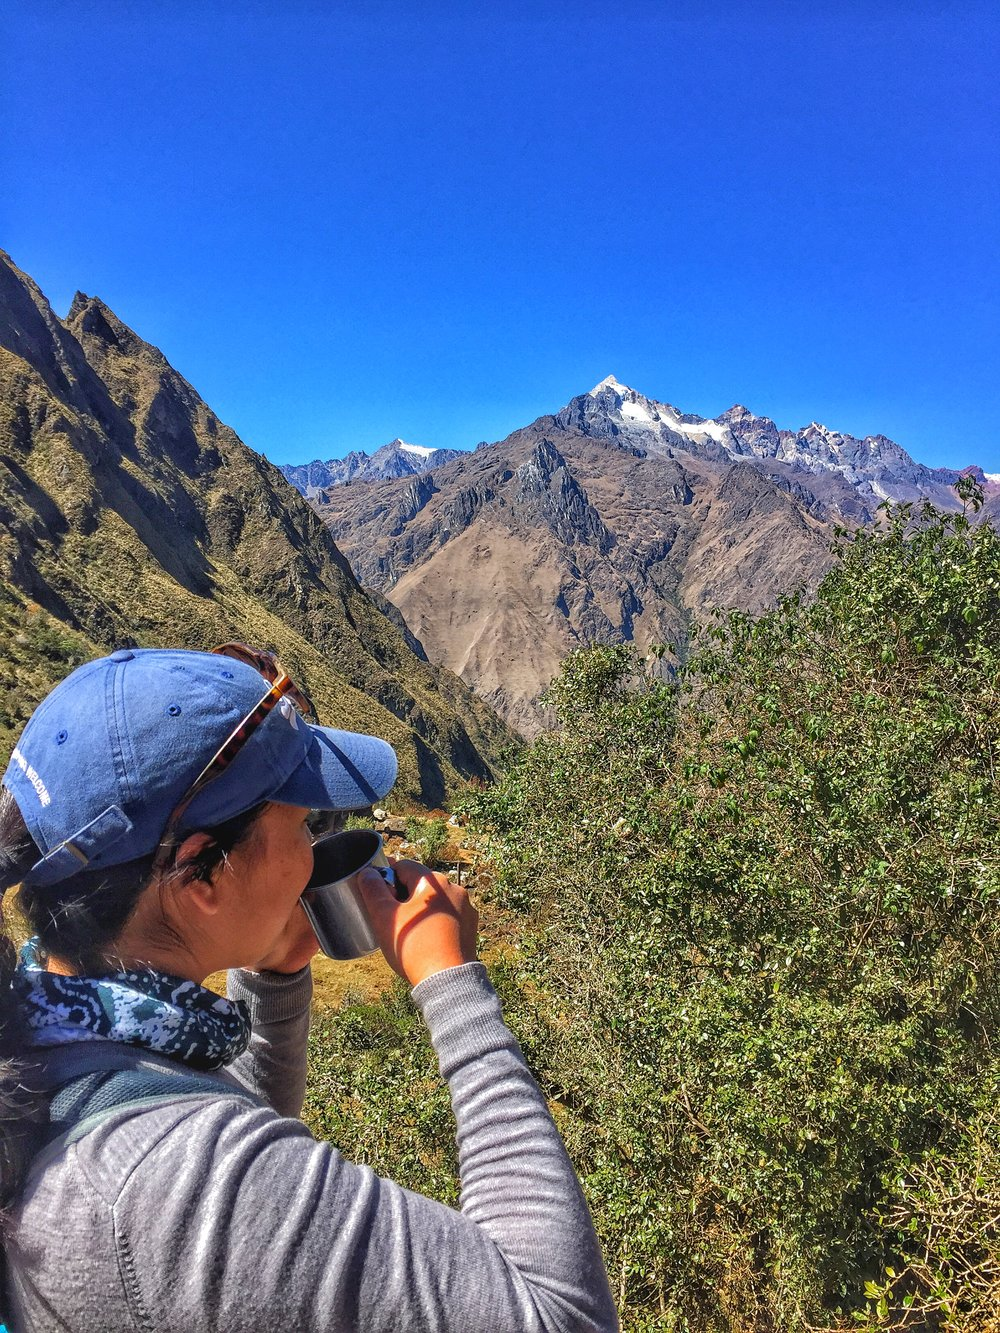 Just having some tea and taking in the view in top of the Andes.